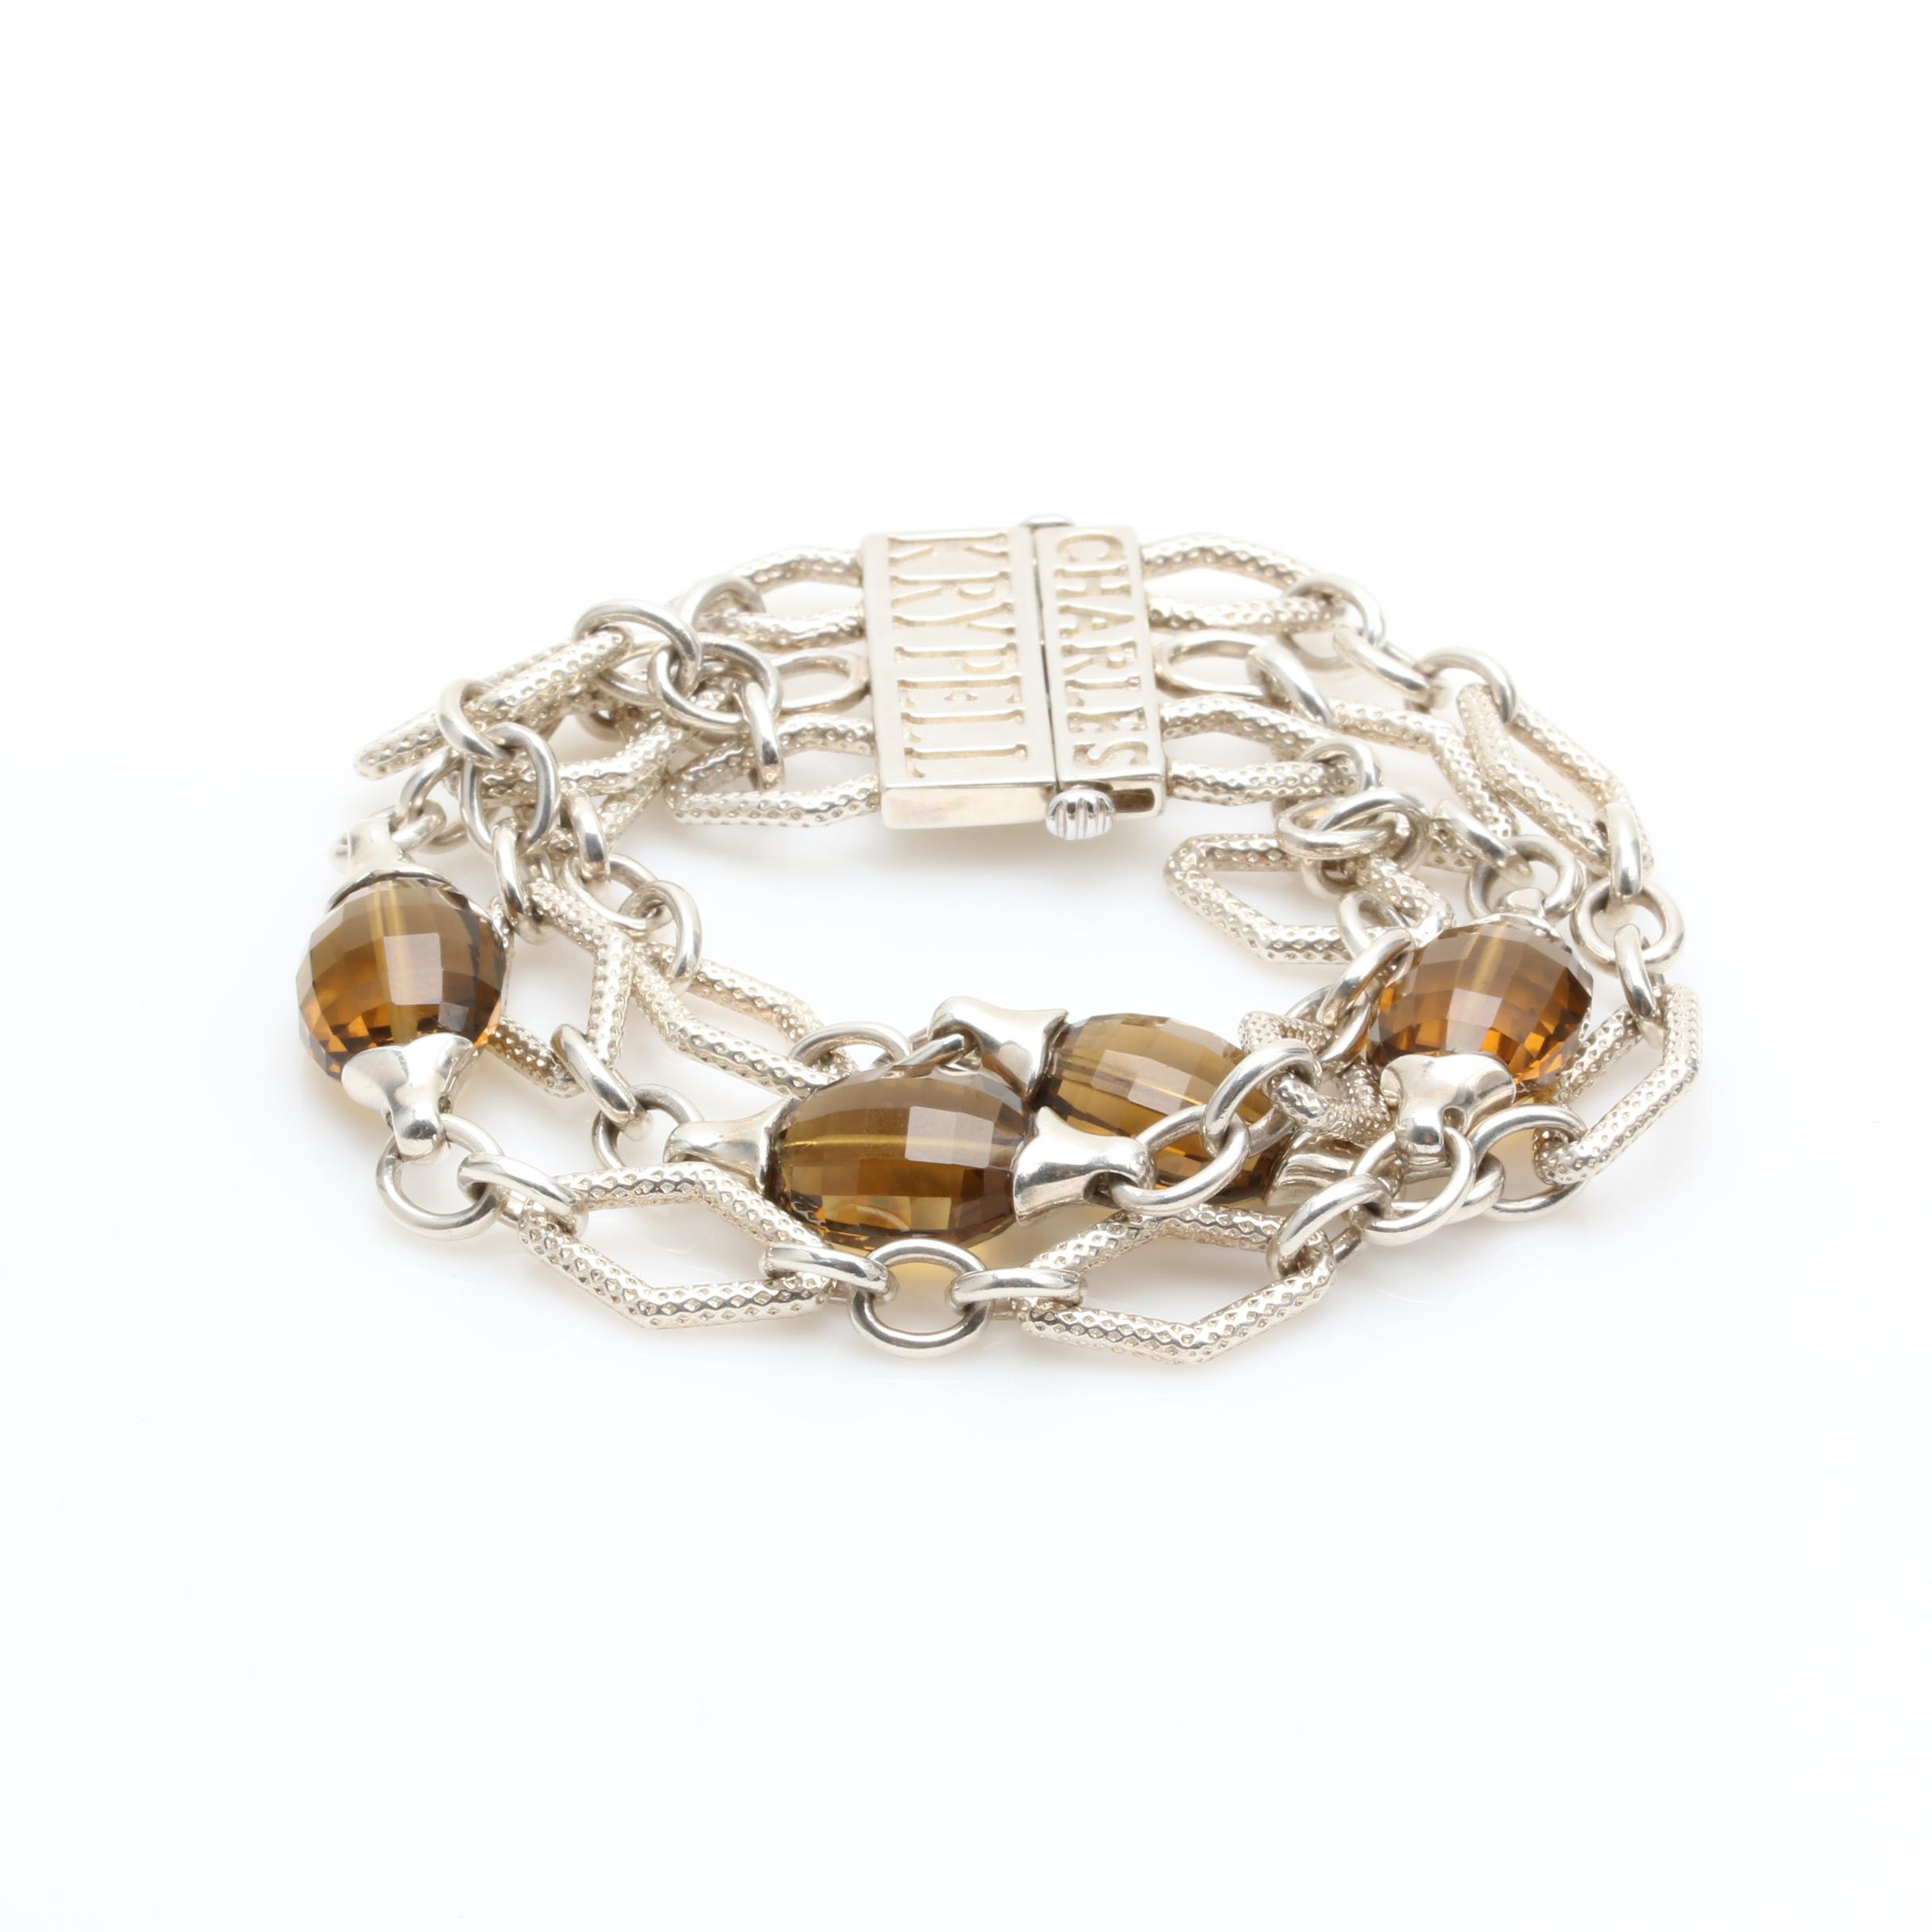 Charles Krypell Sterling Silver Smoky Quartz Bracelet with 14K White Gold Accent